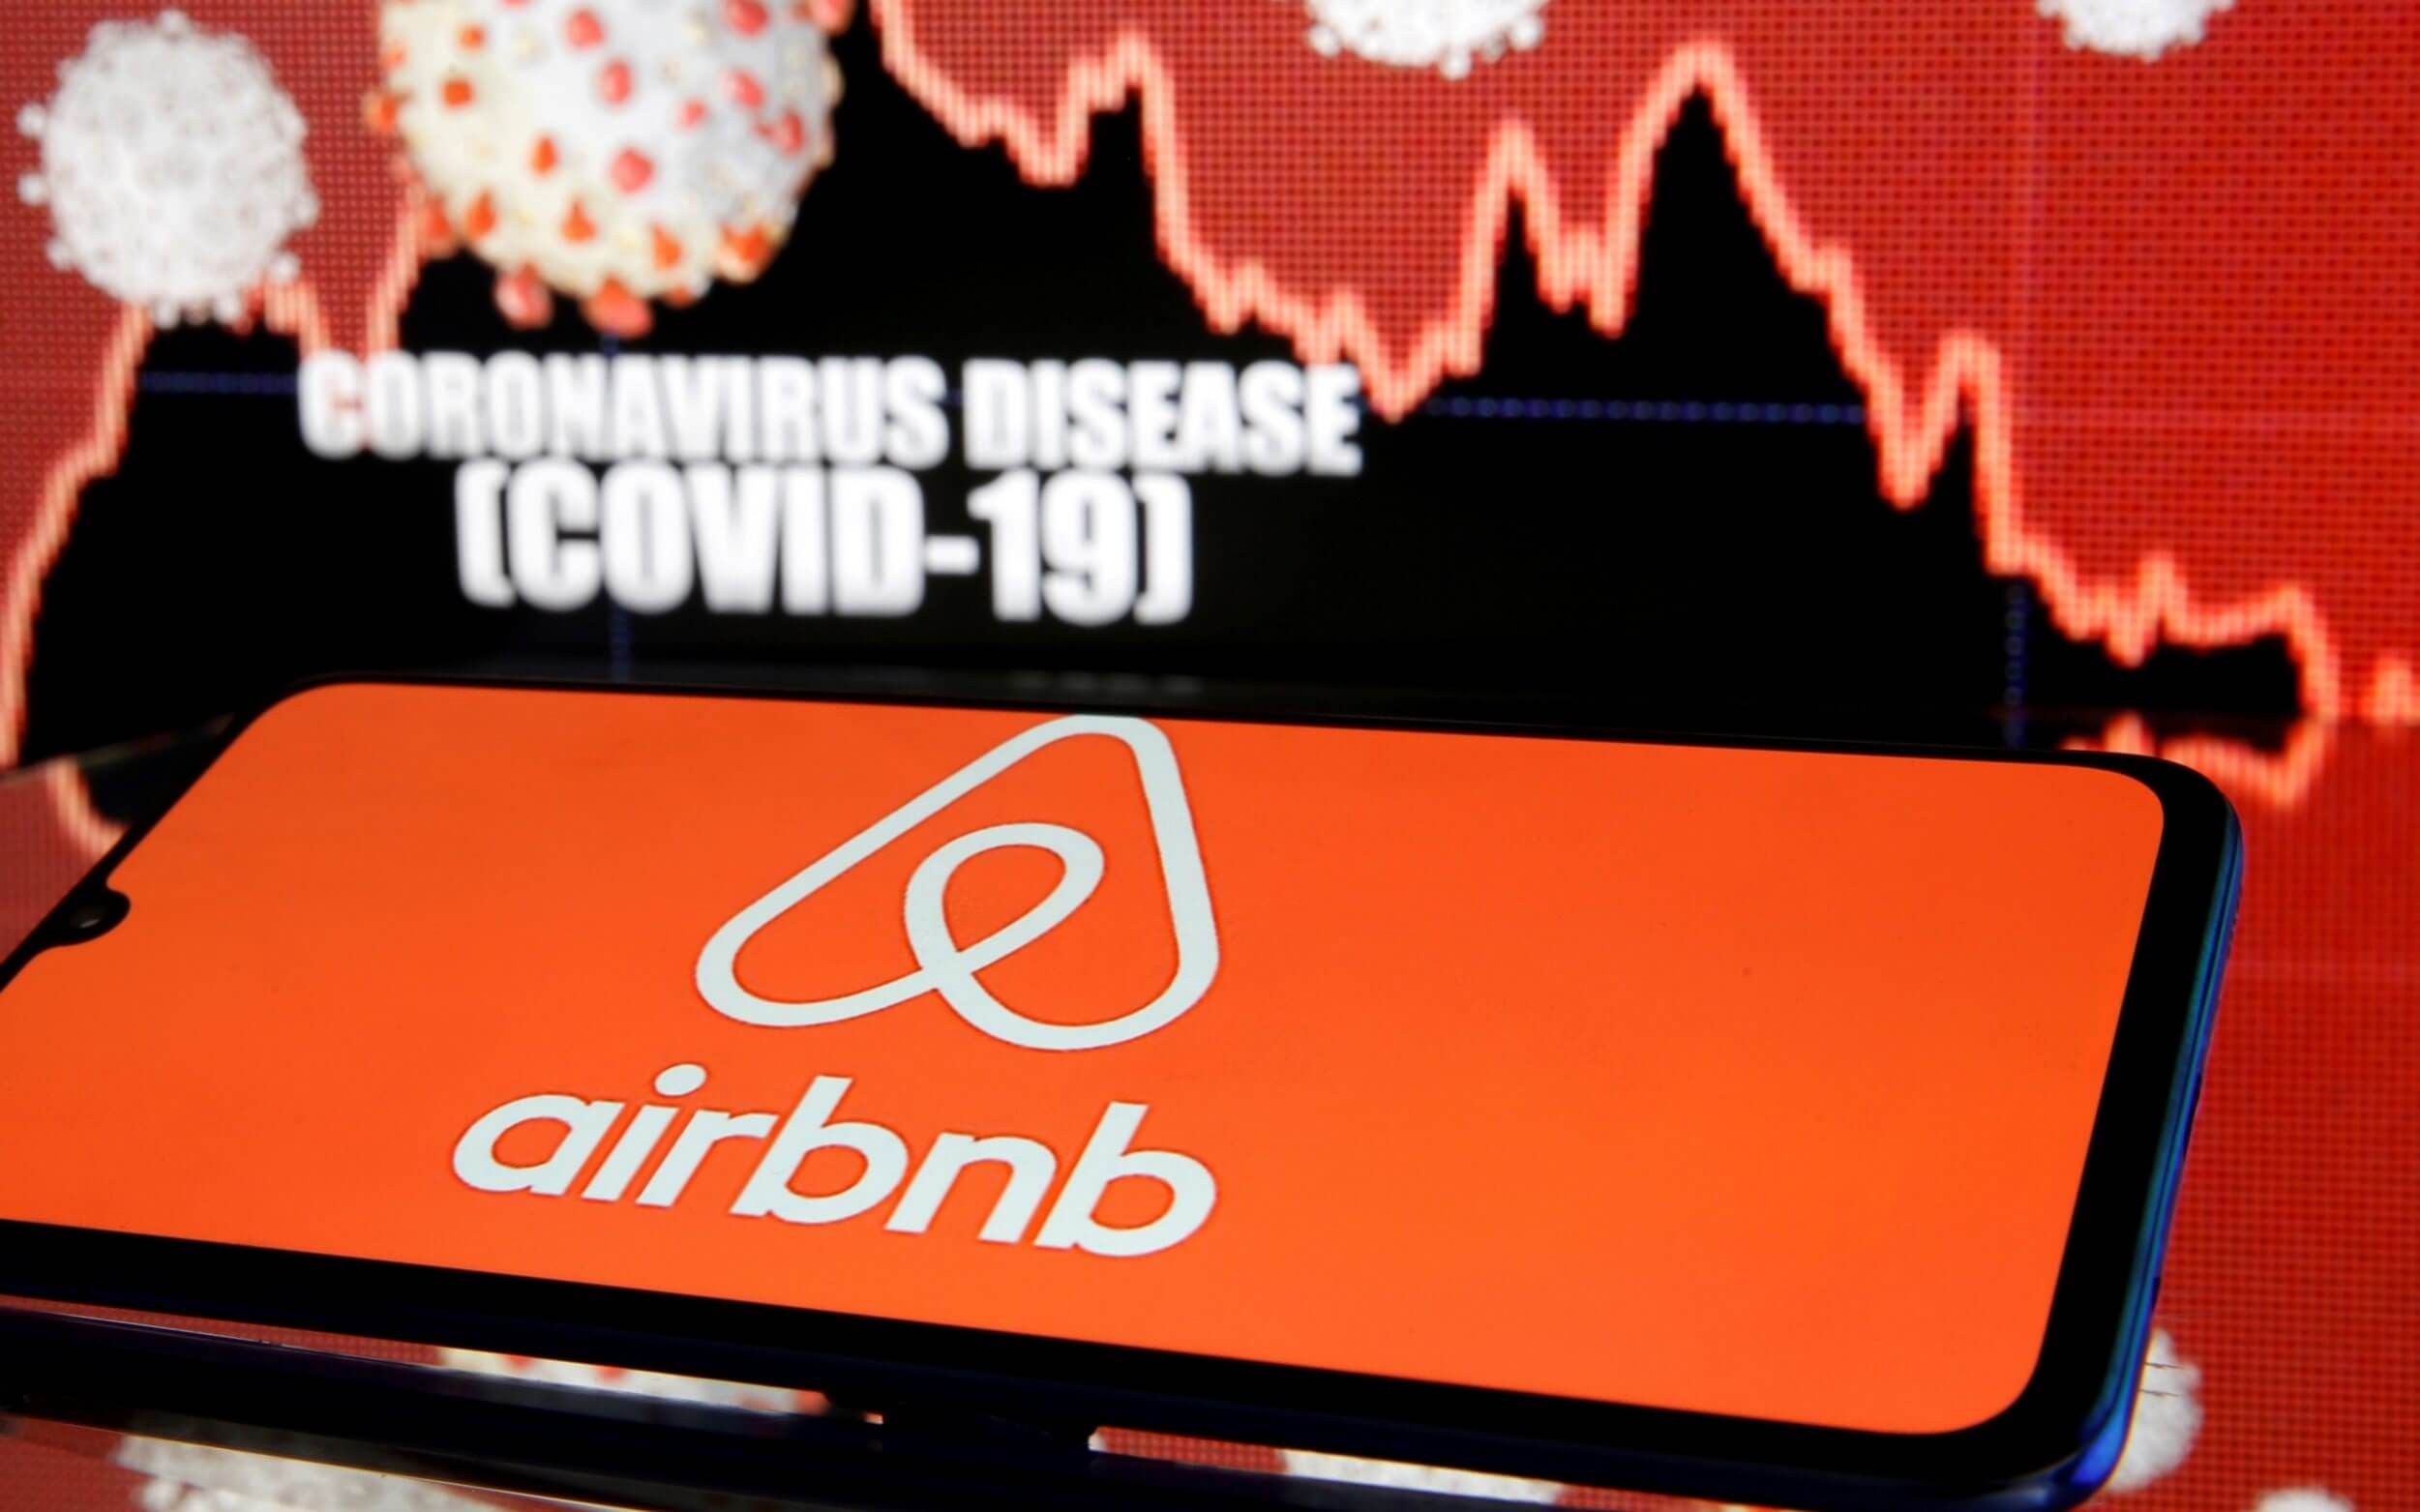 Airbnbs impacted by Covid and the new cleaning protocols